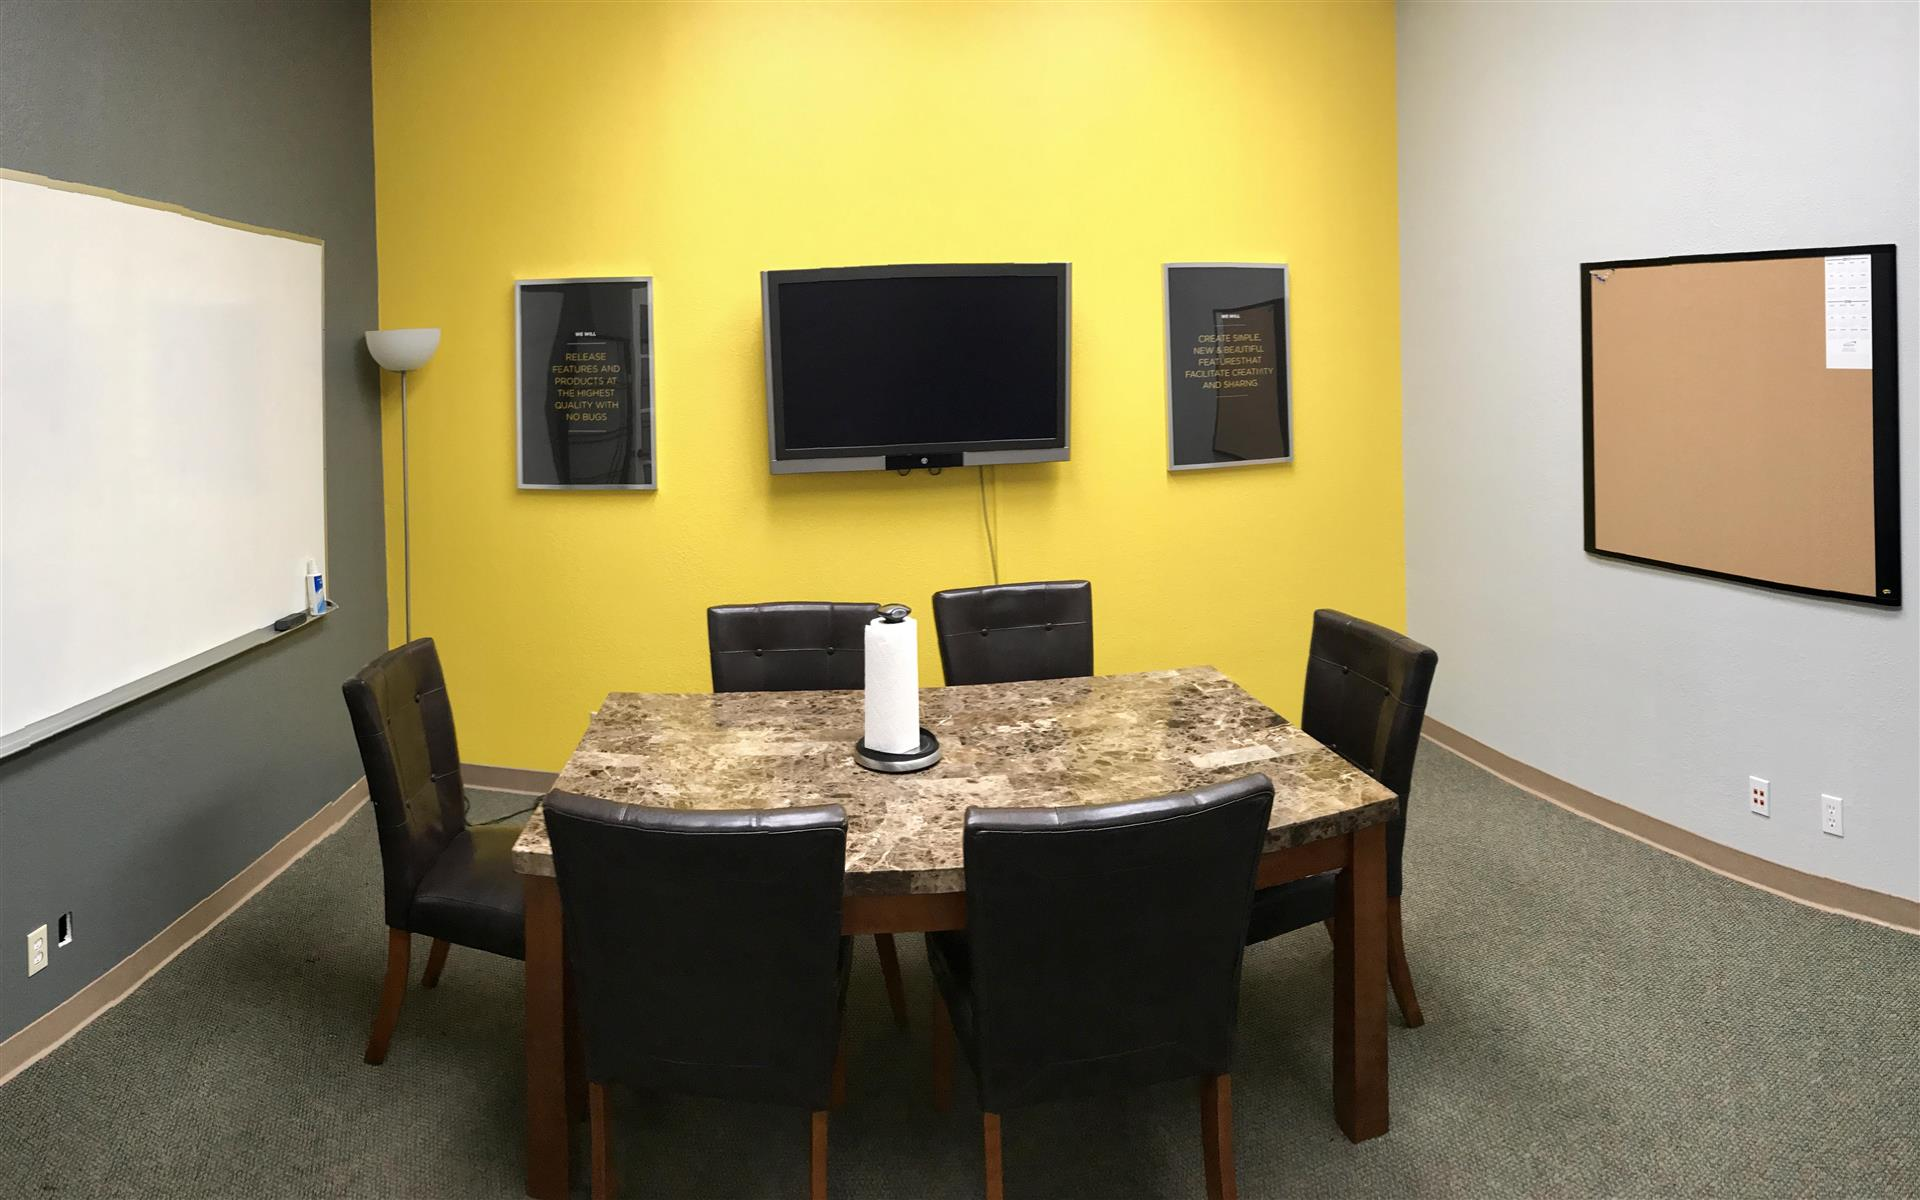 Nventify - Conference room for 6-8 people (hourly)